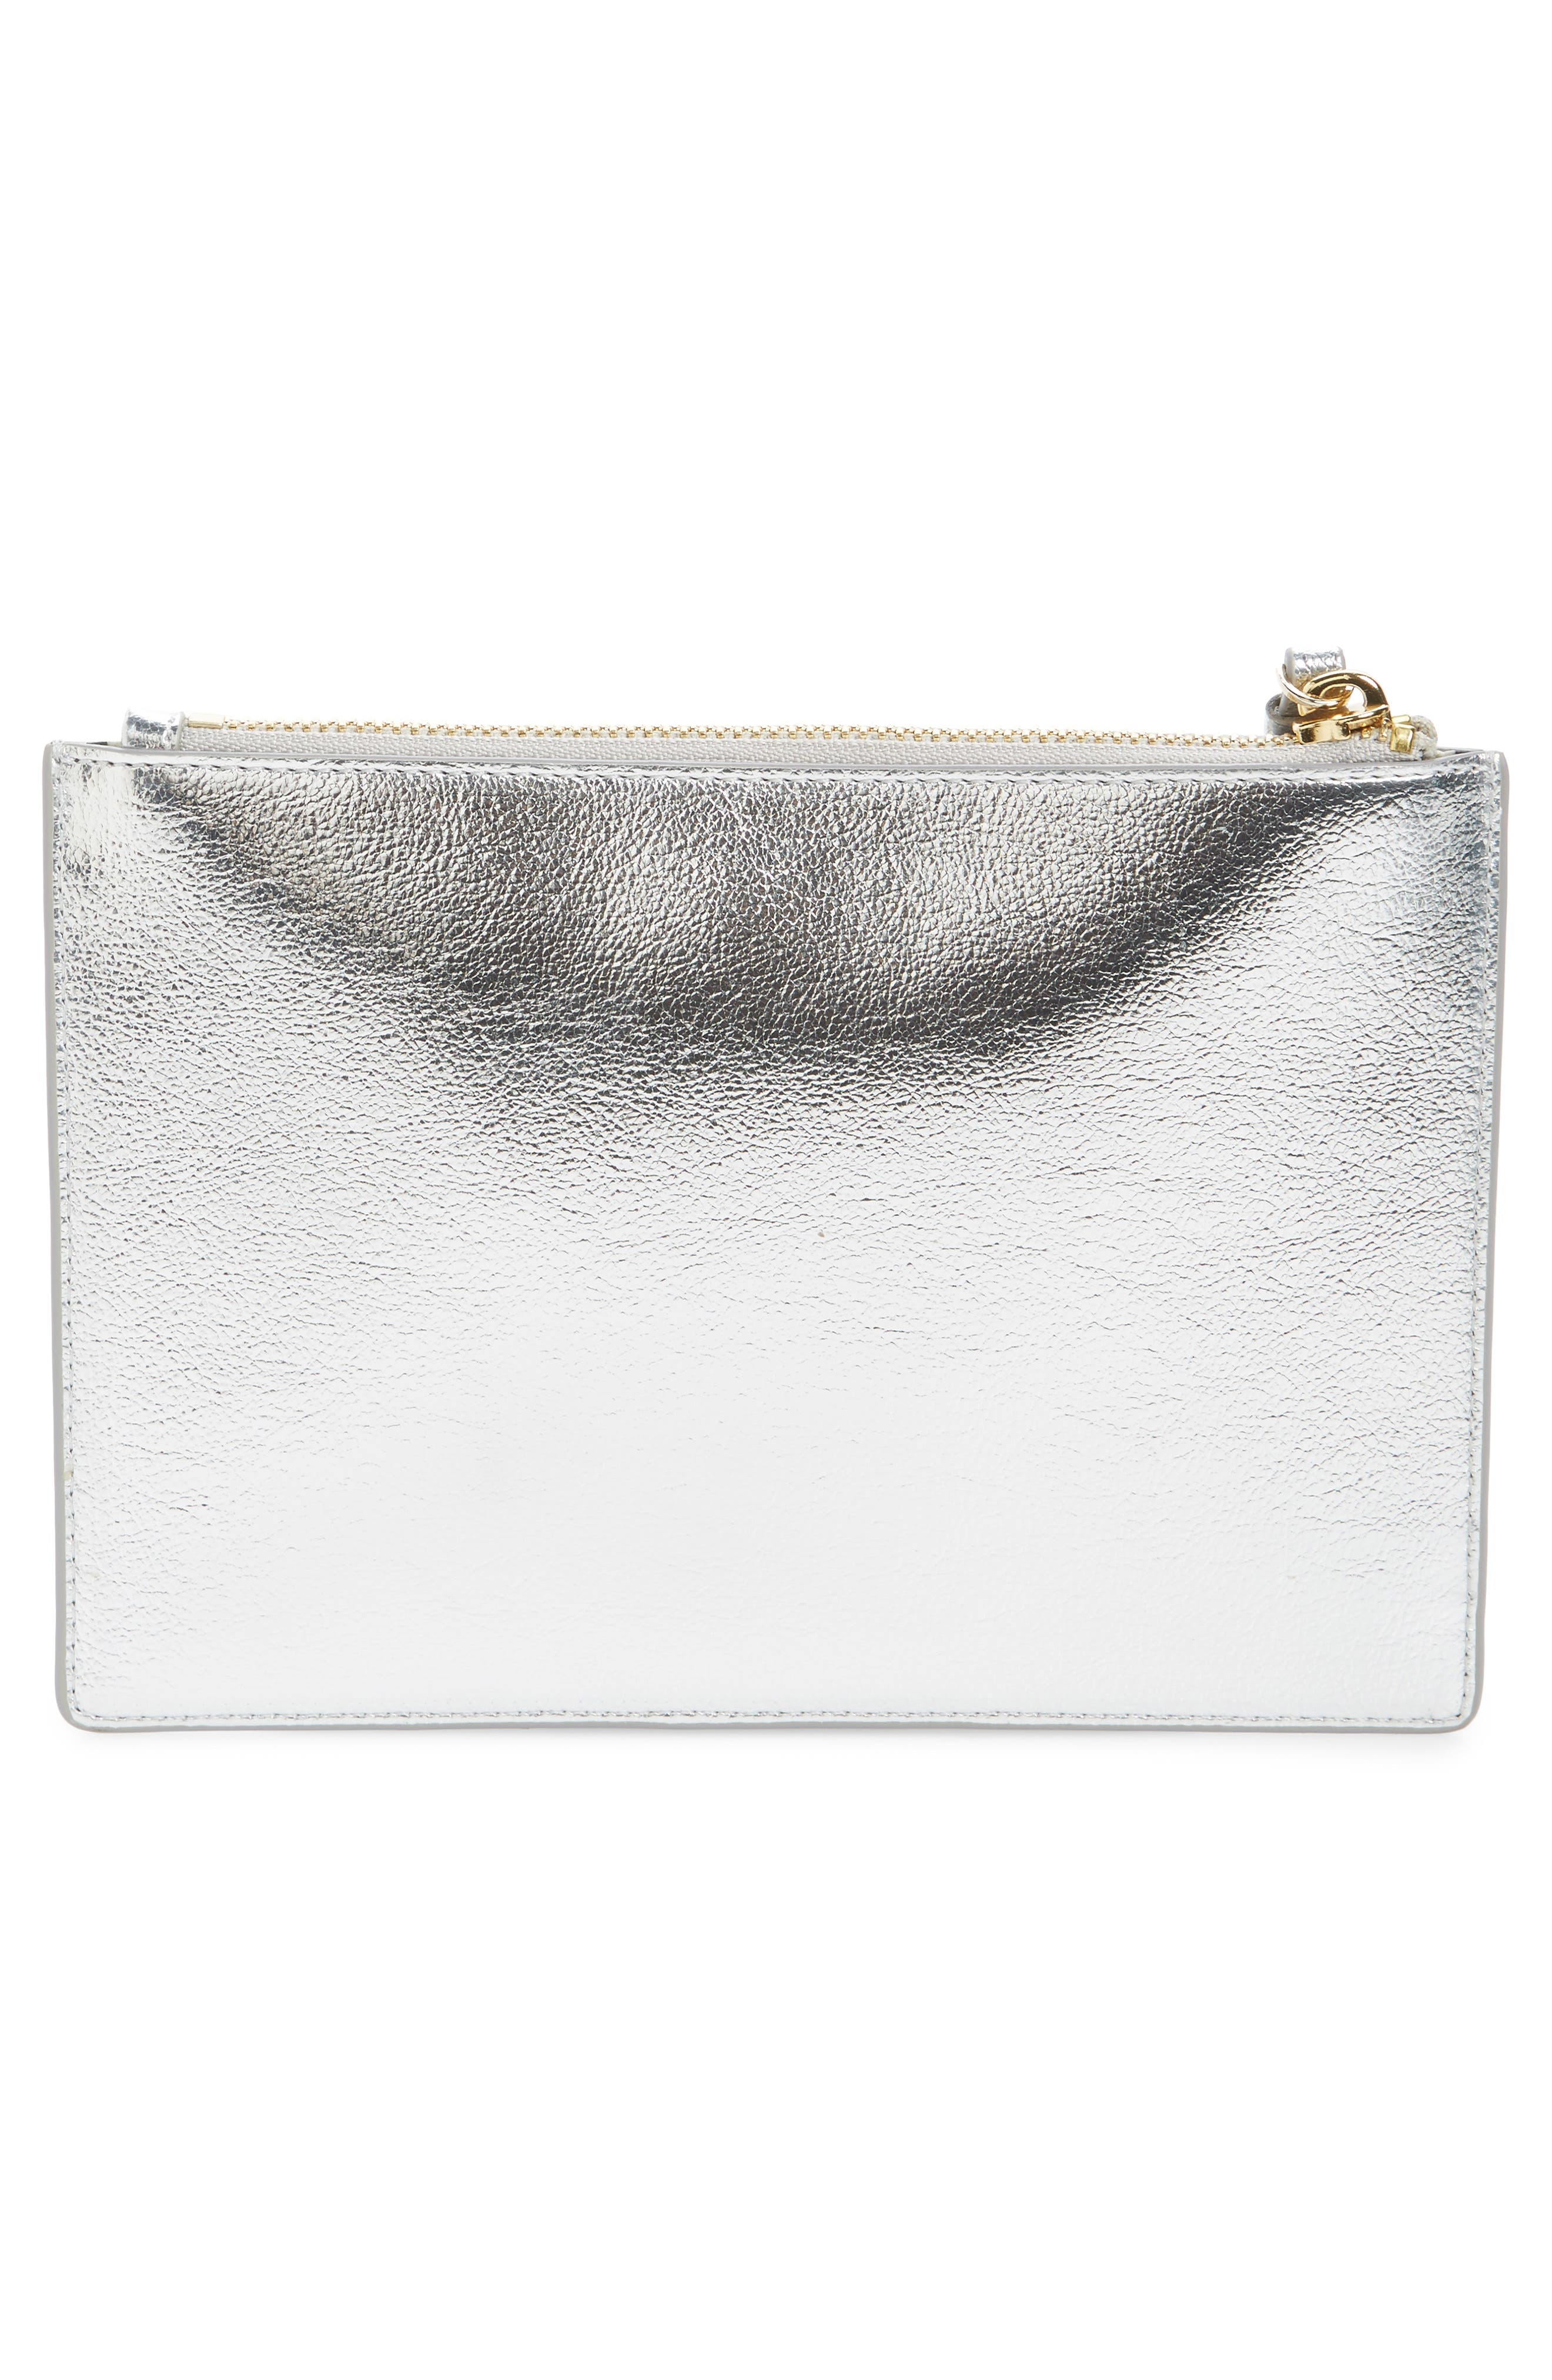 highland drive - yury faux leather zip pouch,                             Alternate thumbnail 3, color,                             040